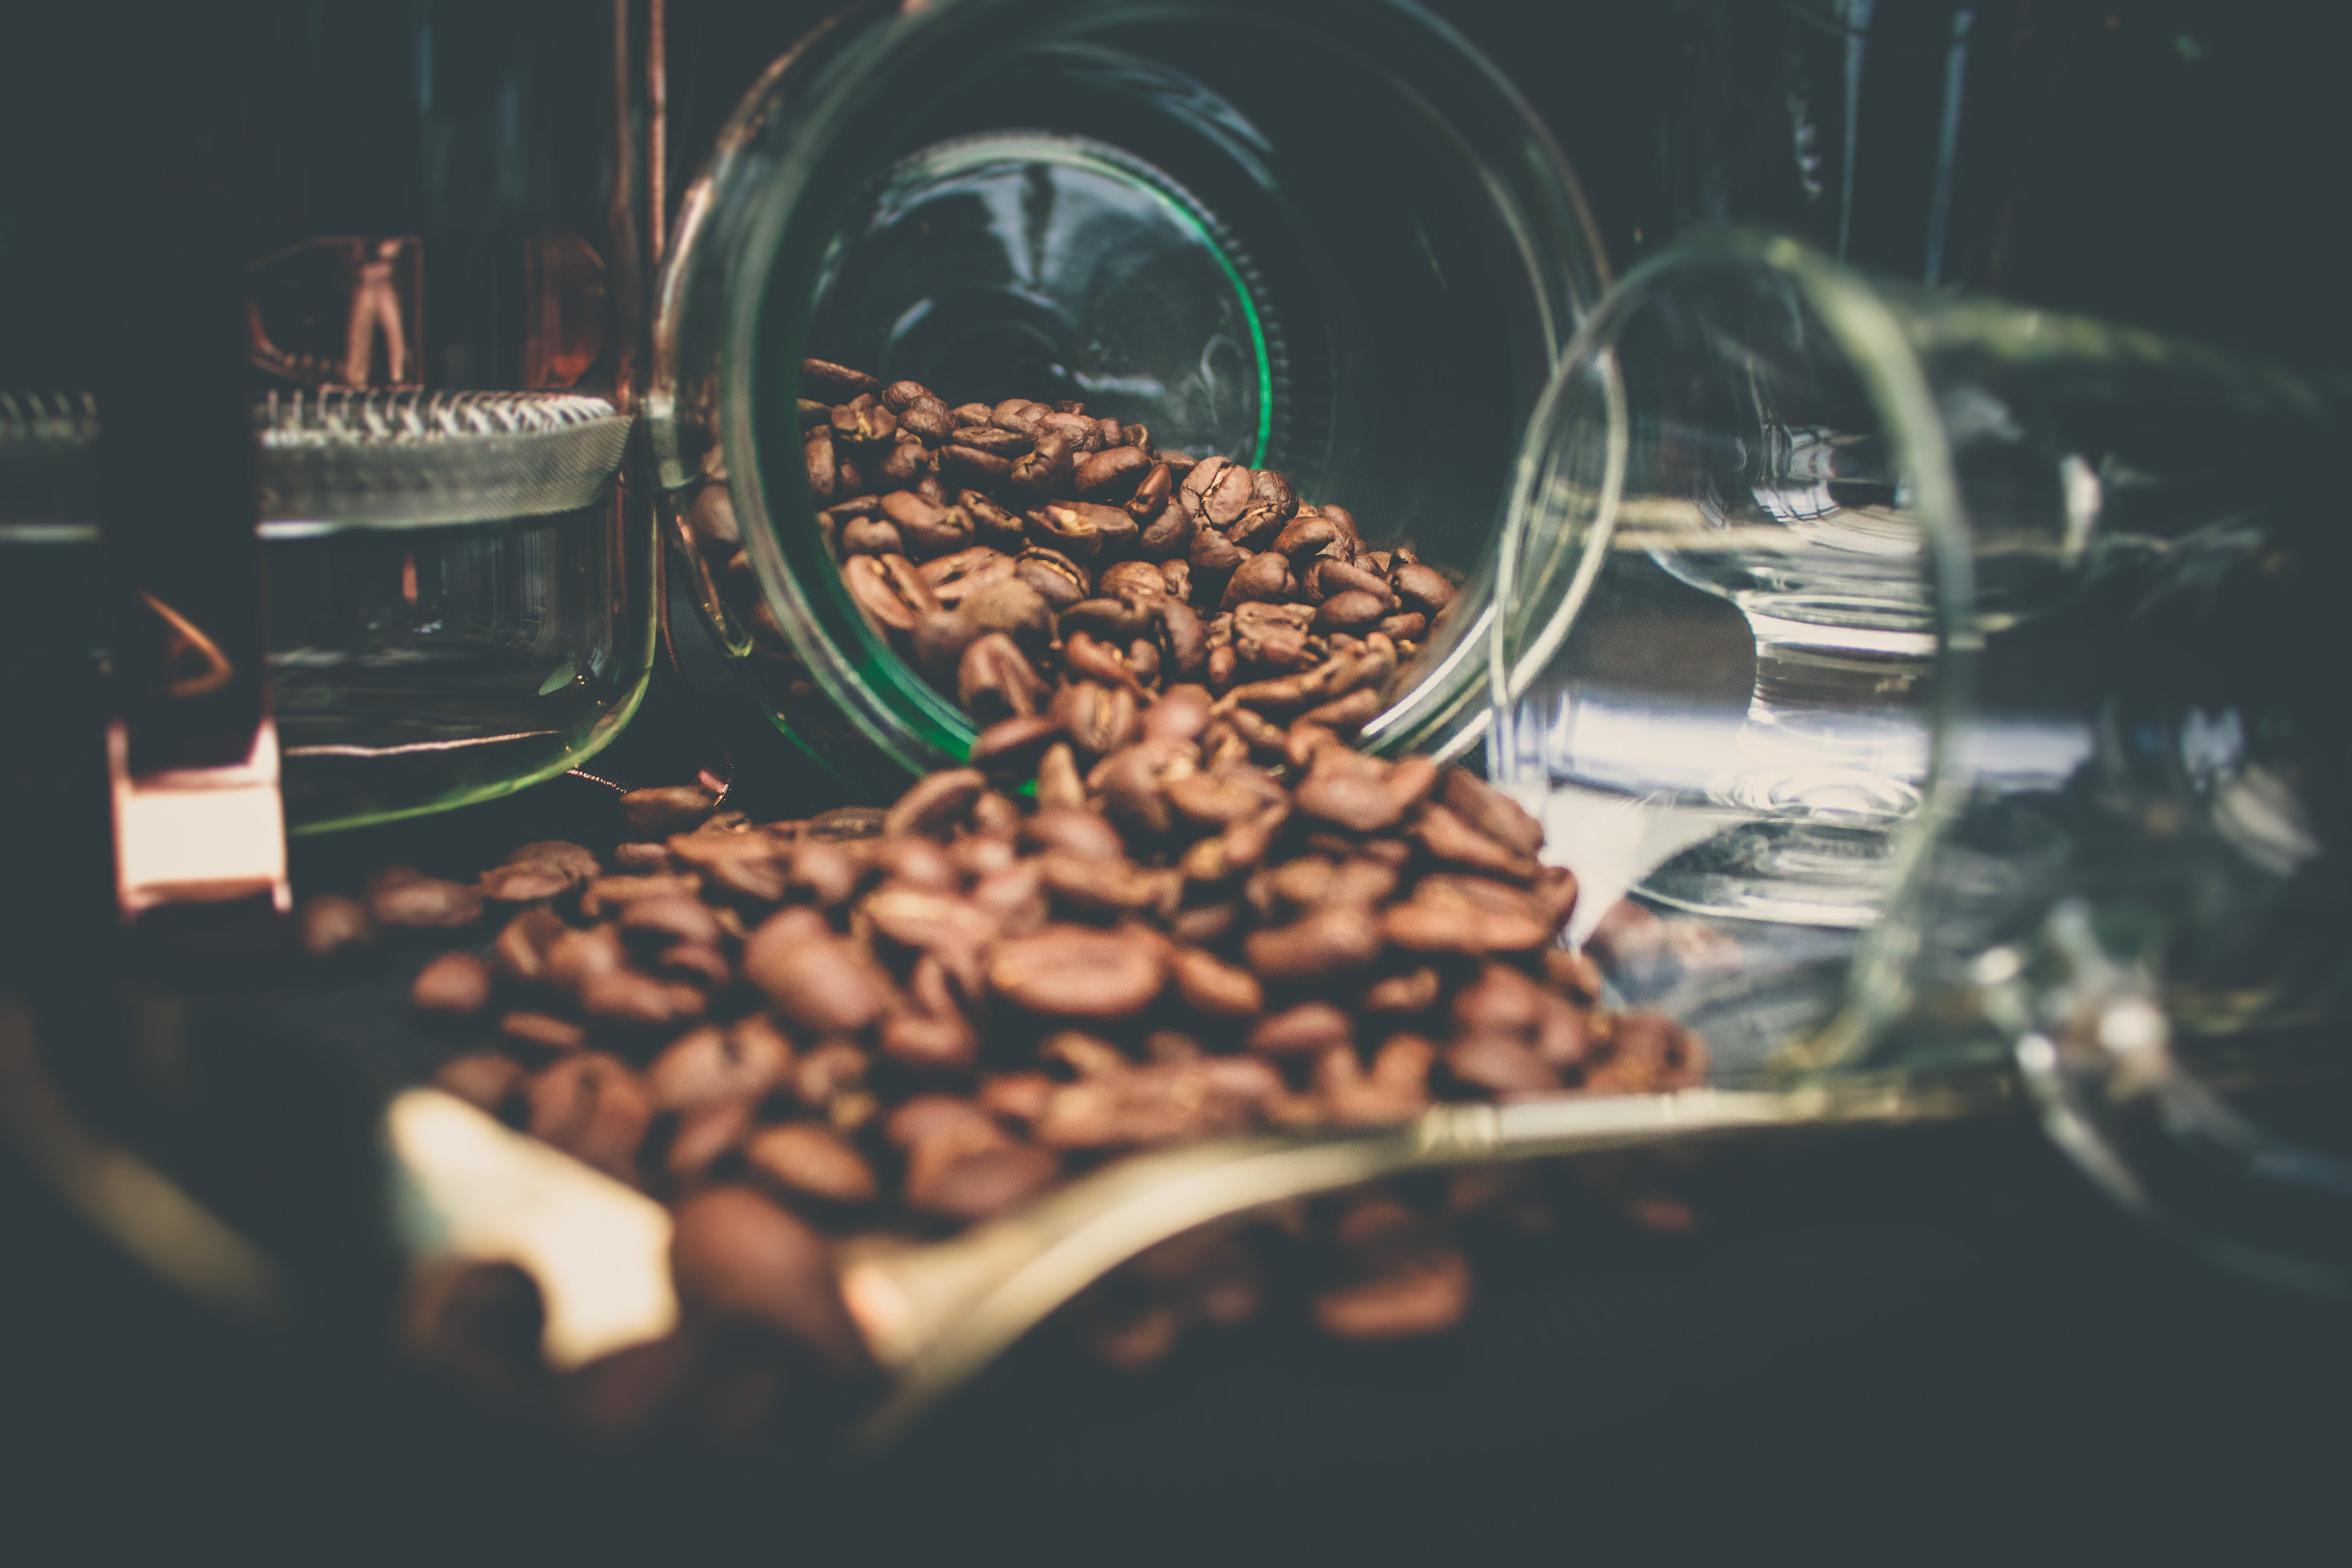 Shallow Focus Photography of Coffee Beans